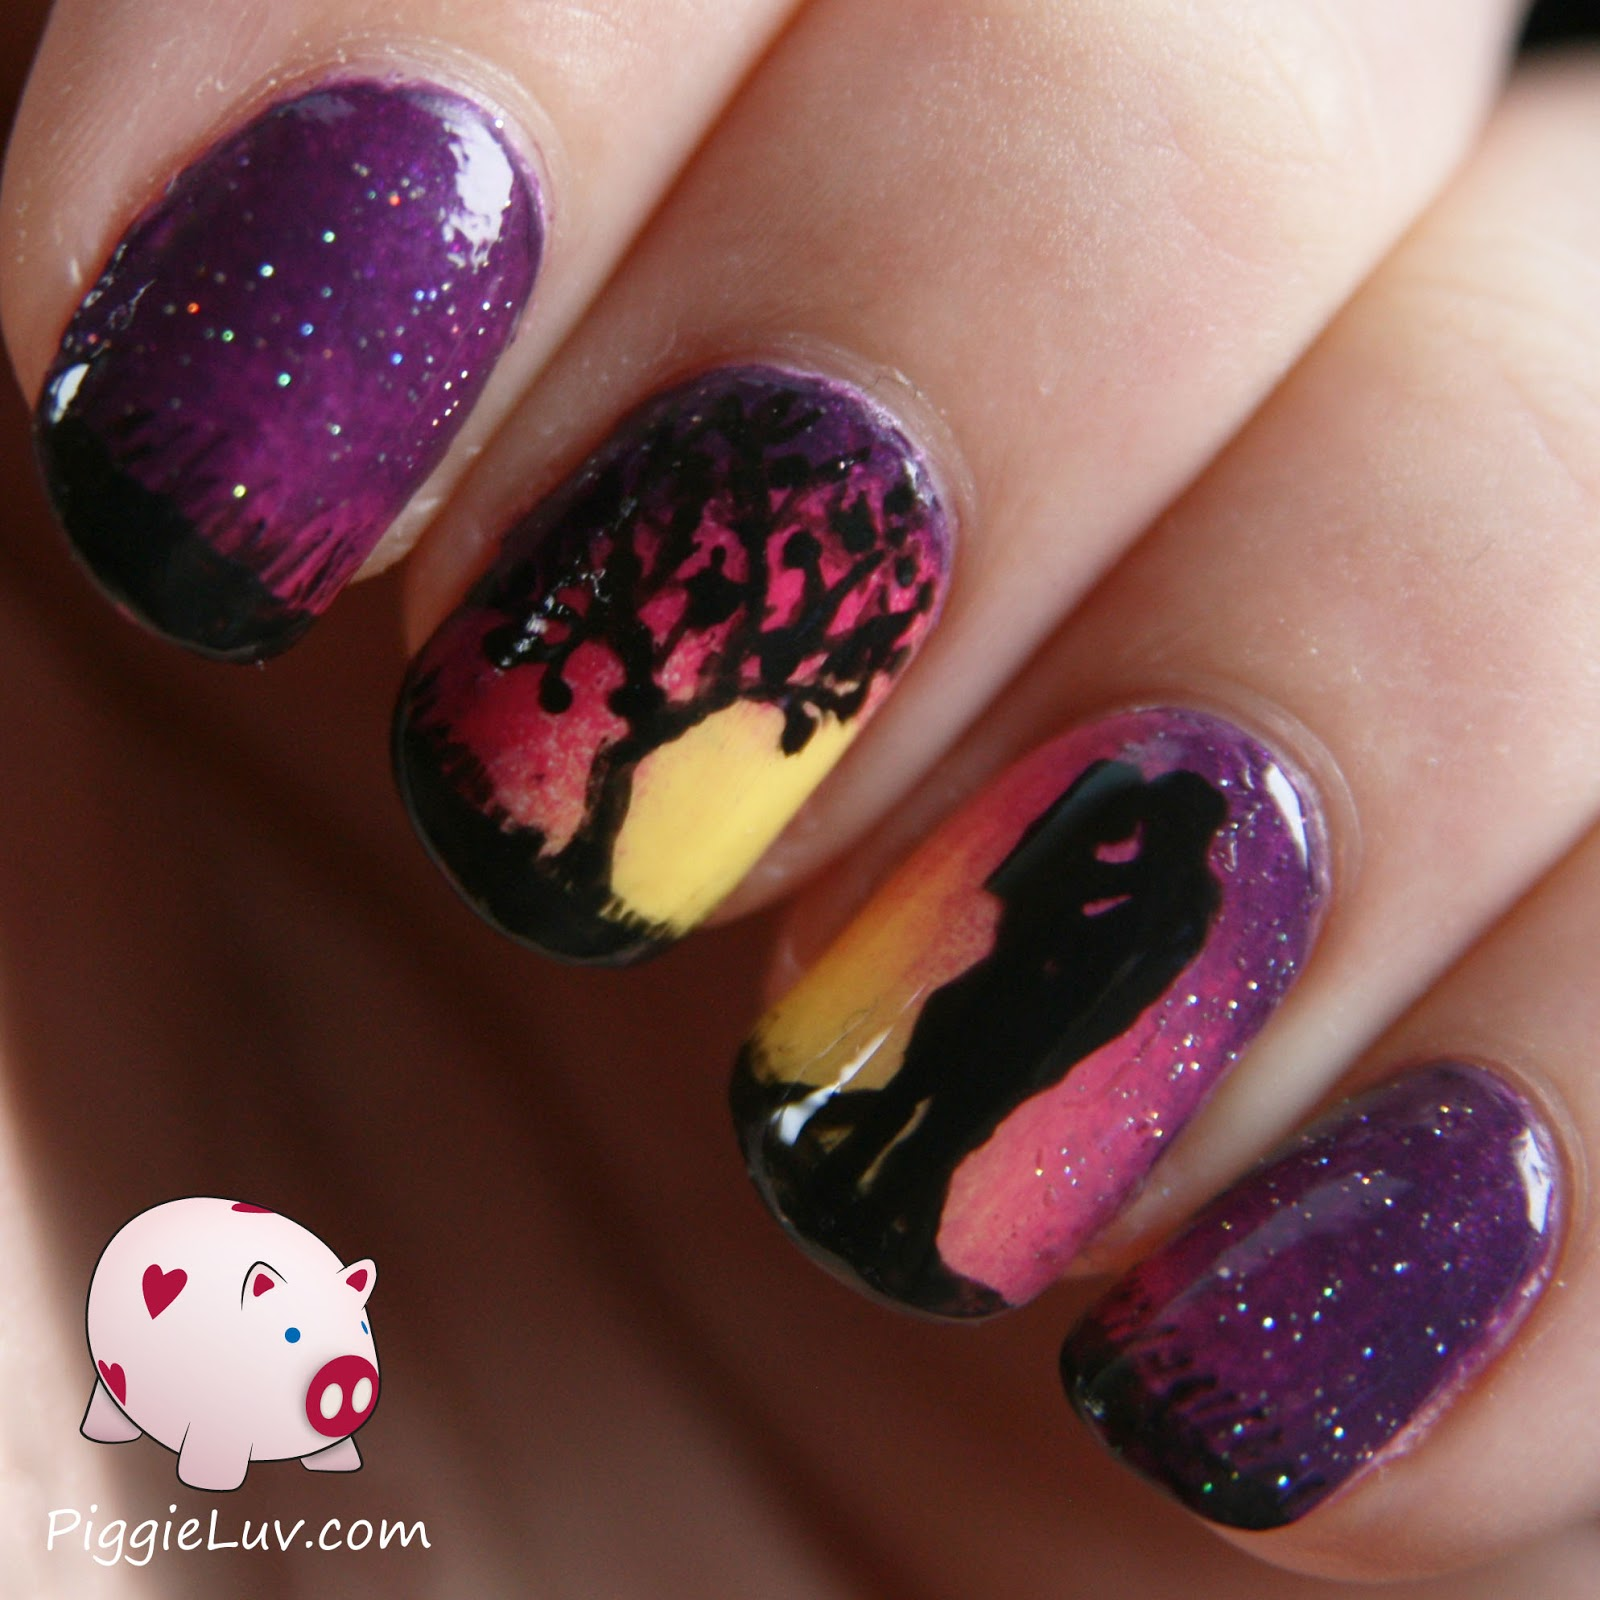 PiggieLuv: Romantic sunset nail art